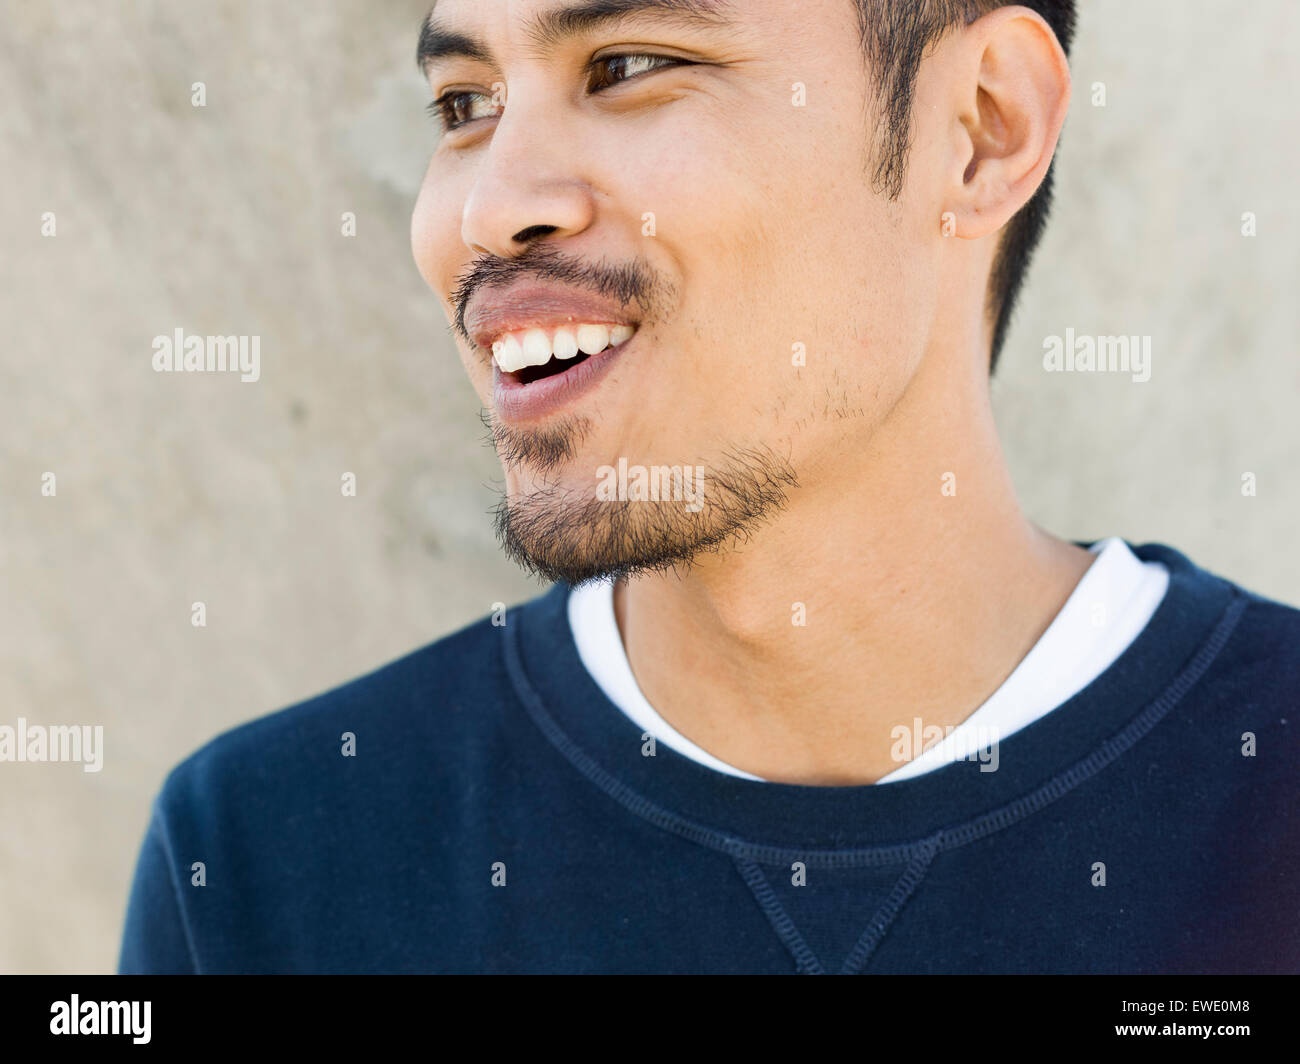 Portrait of a smiling young man Asian mixed race stubble beard looking sideways - Stock Image